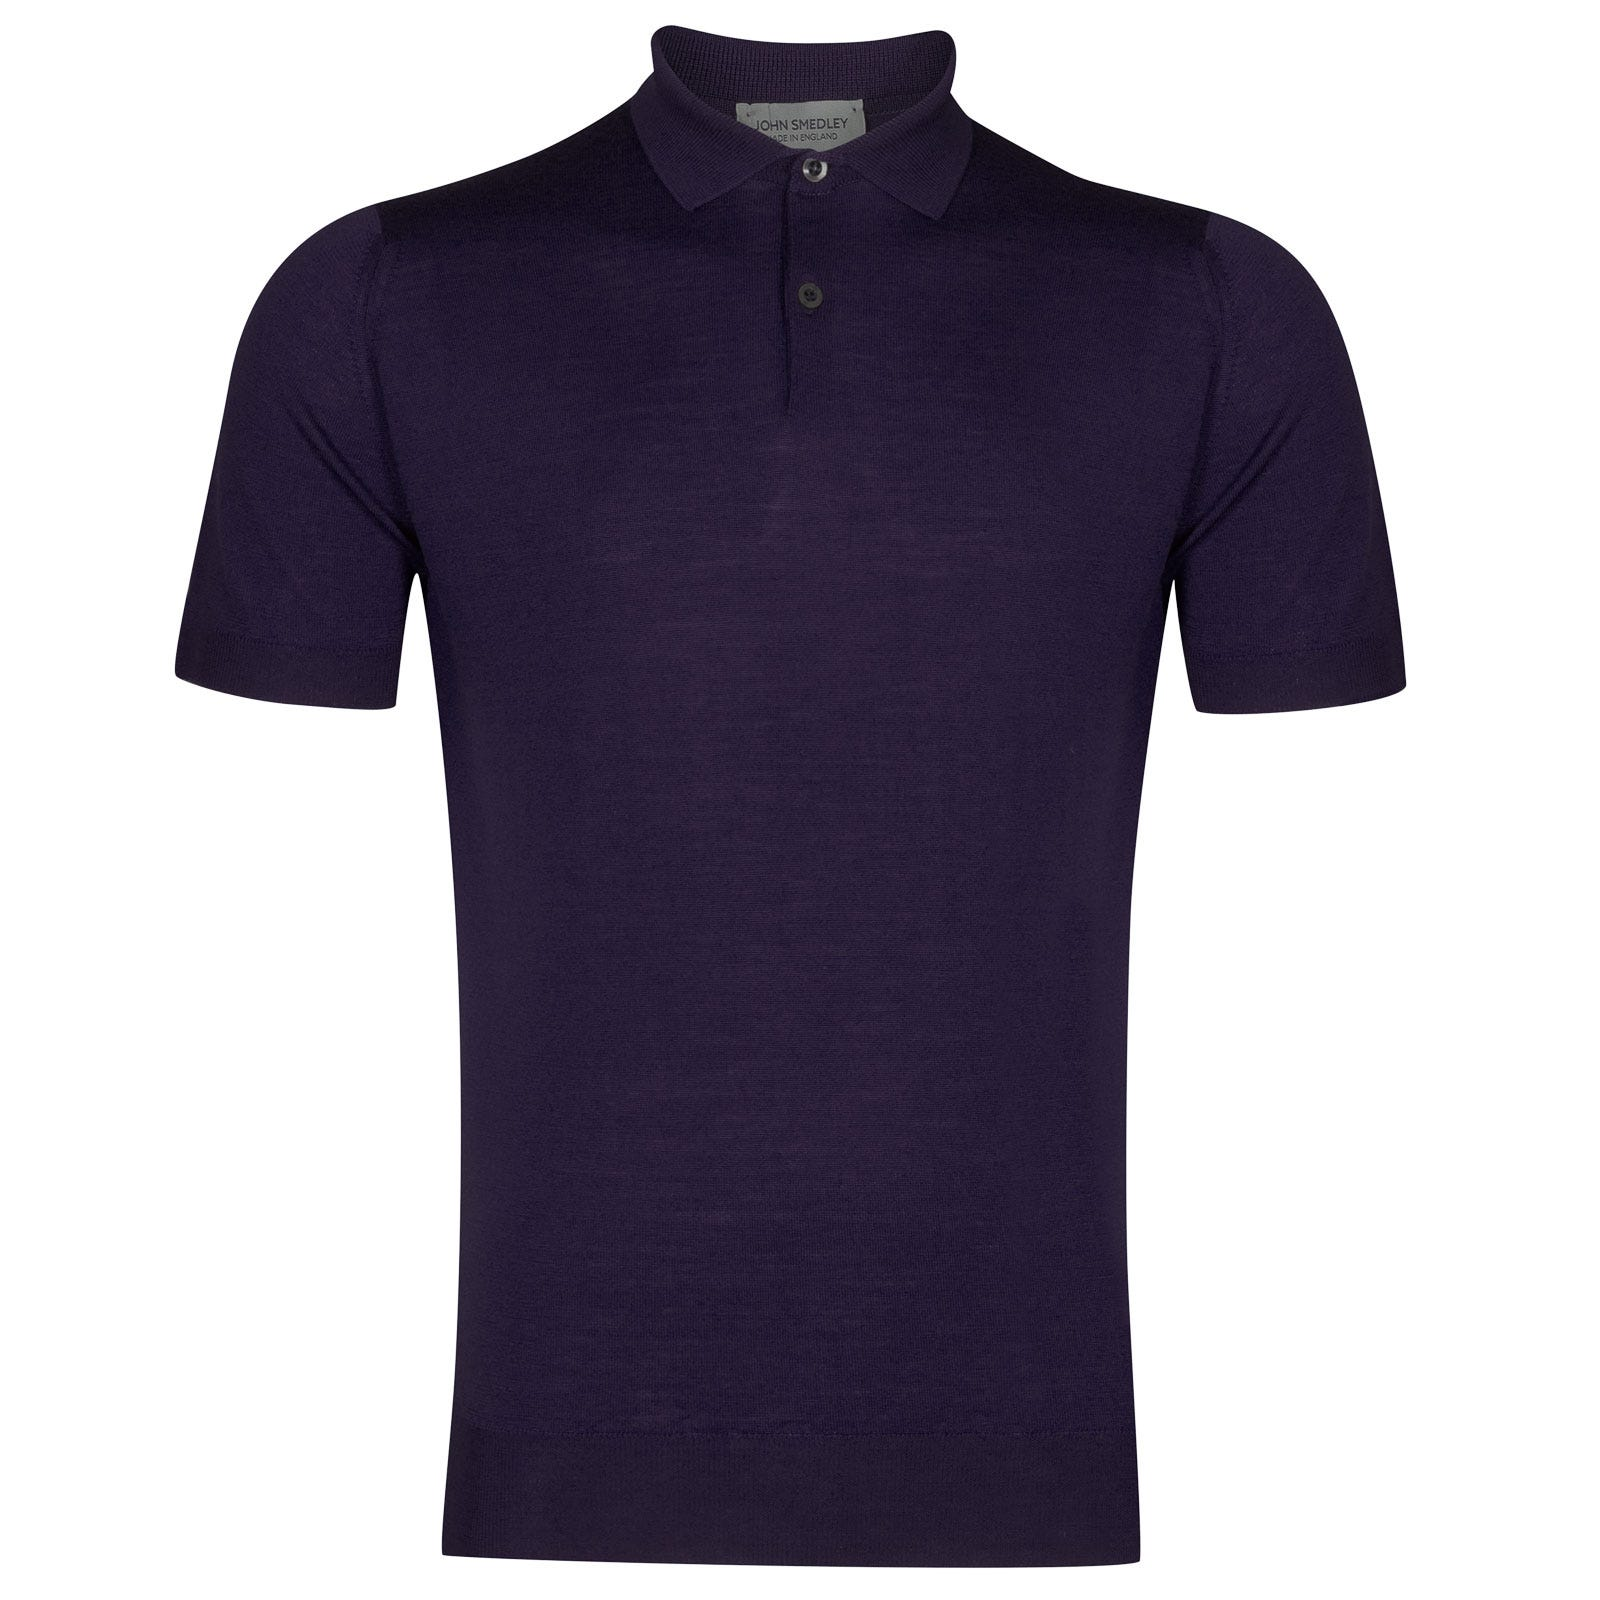 John Smedley payton Merino Wool Shirt in Elderberry Purple-L